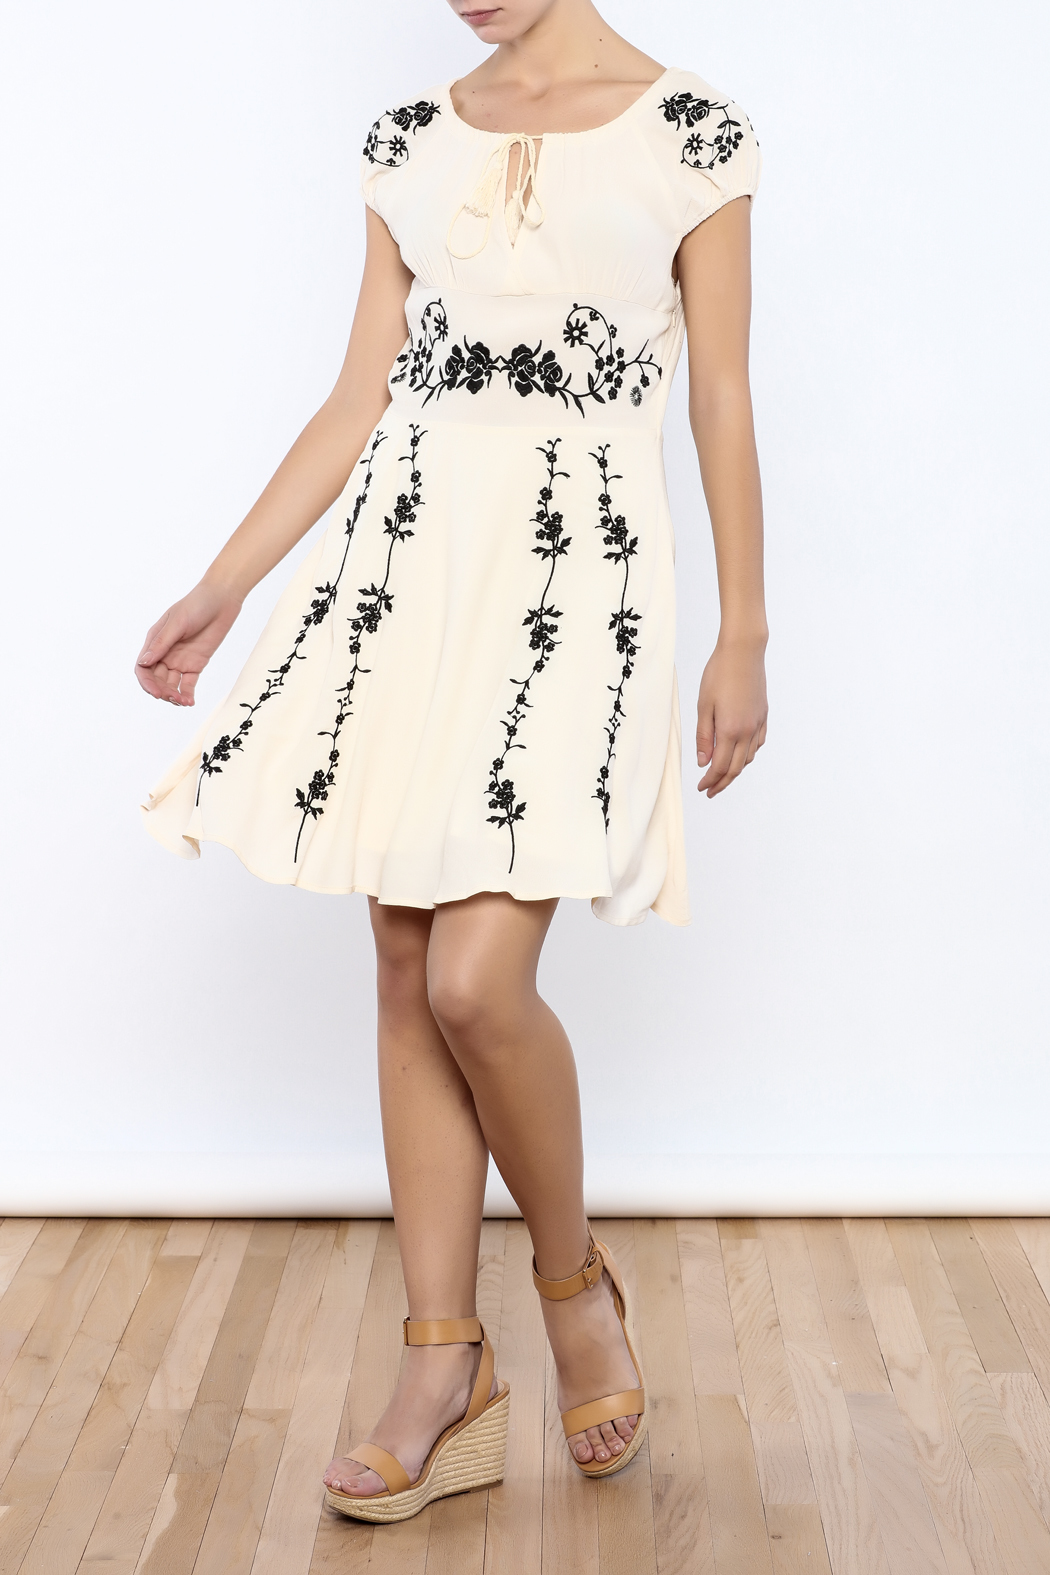 Bacio Beige Embroidered Dress - Front Full Image